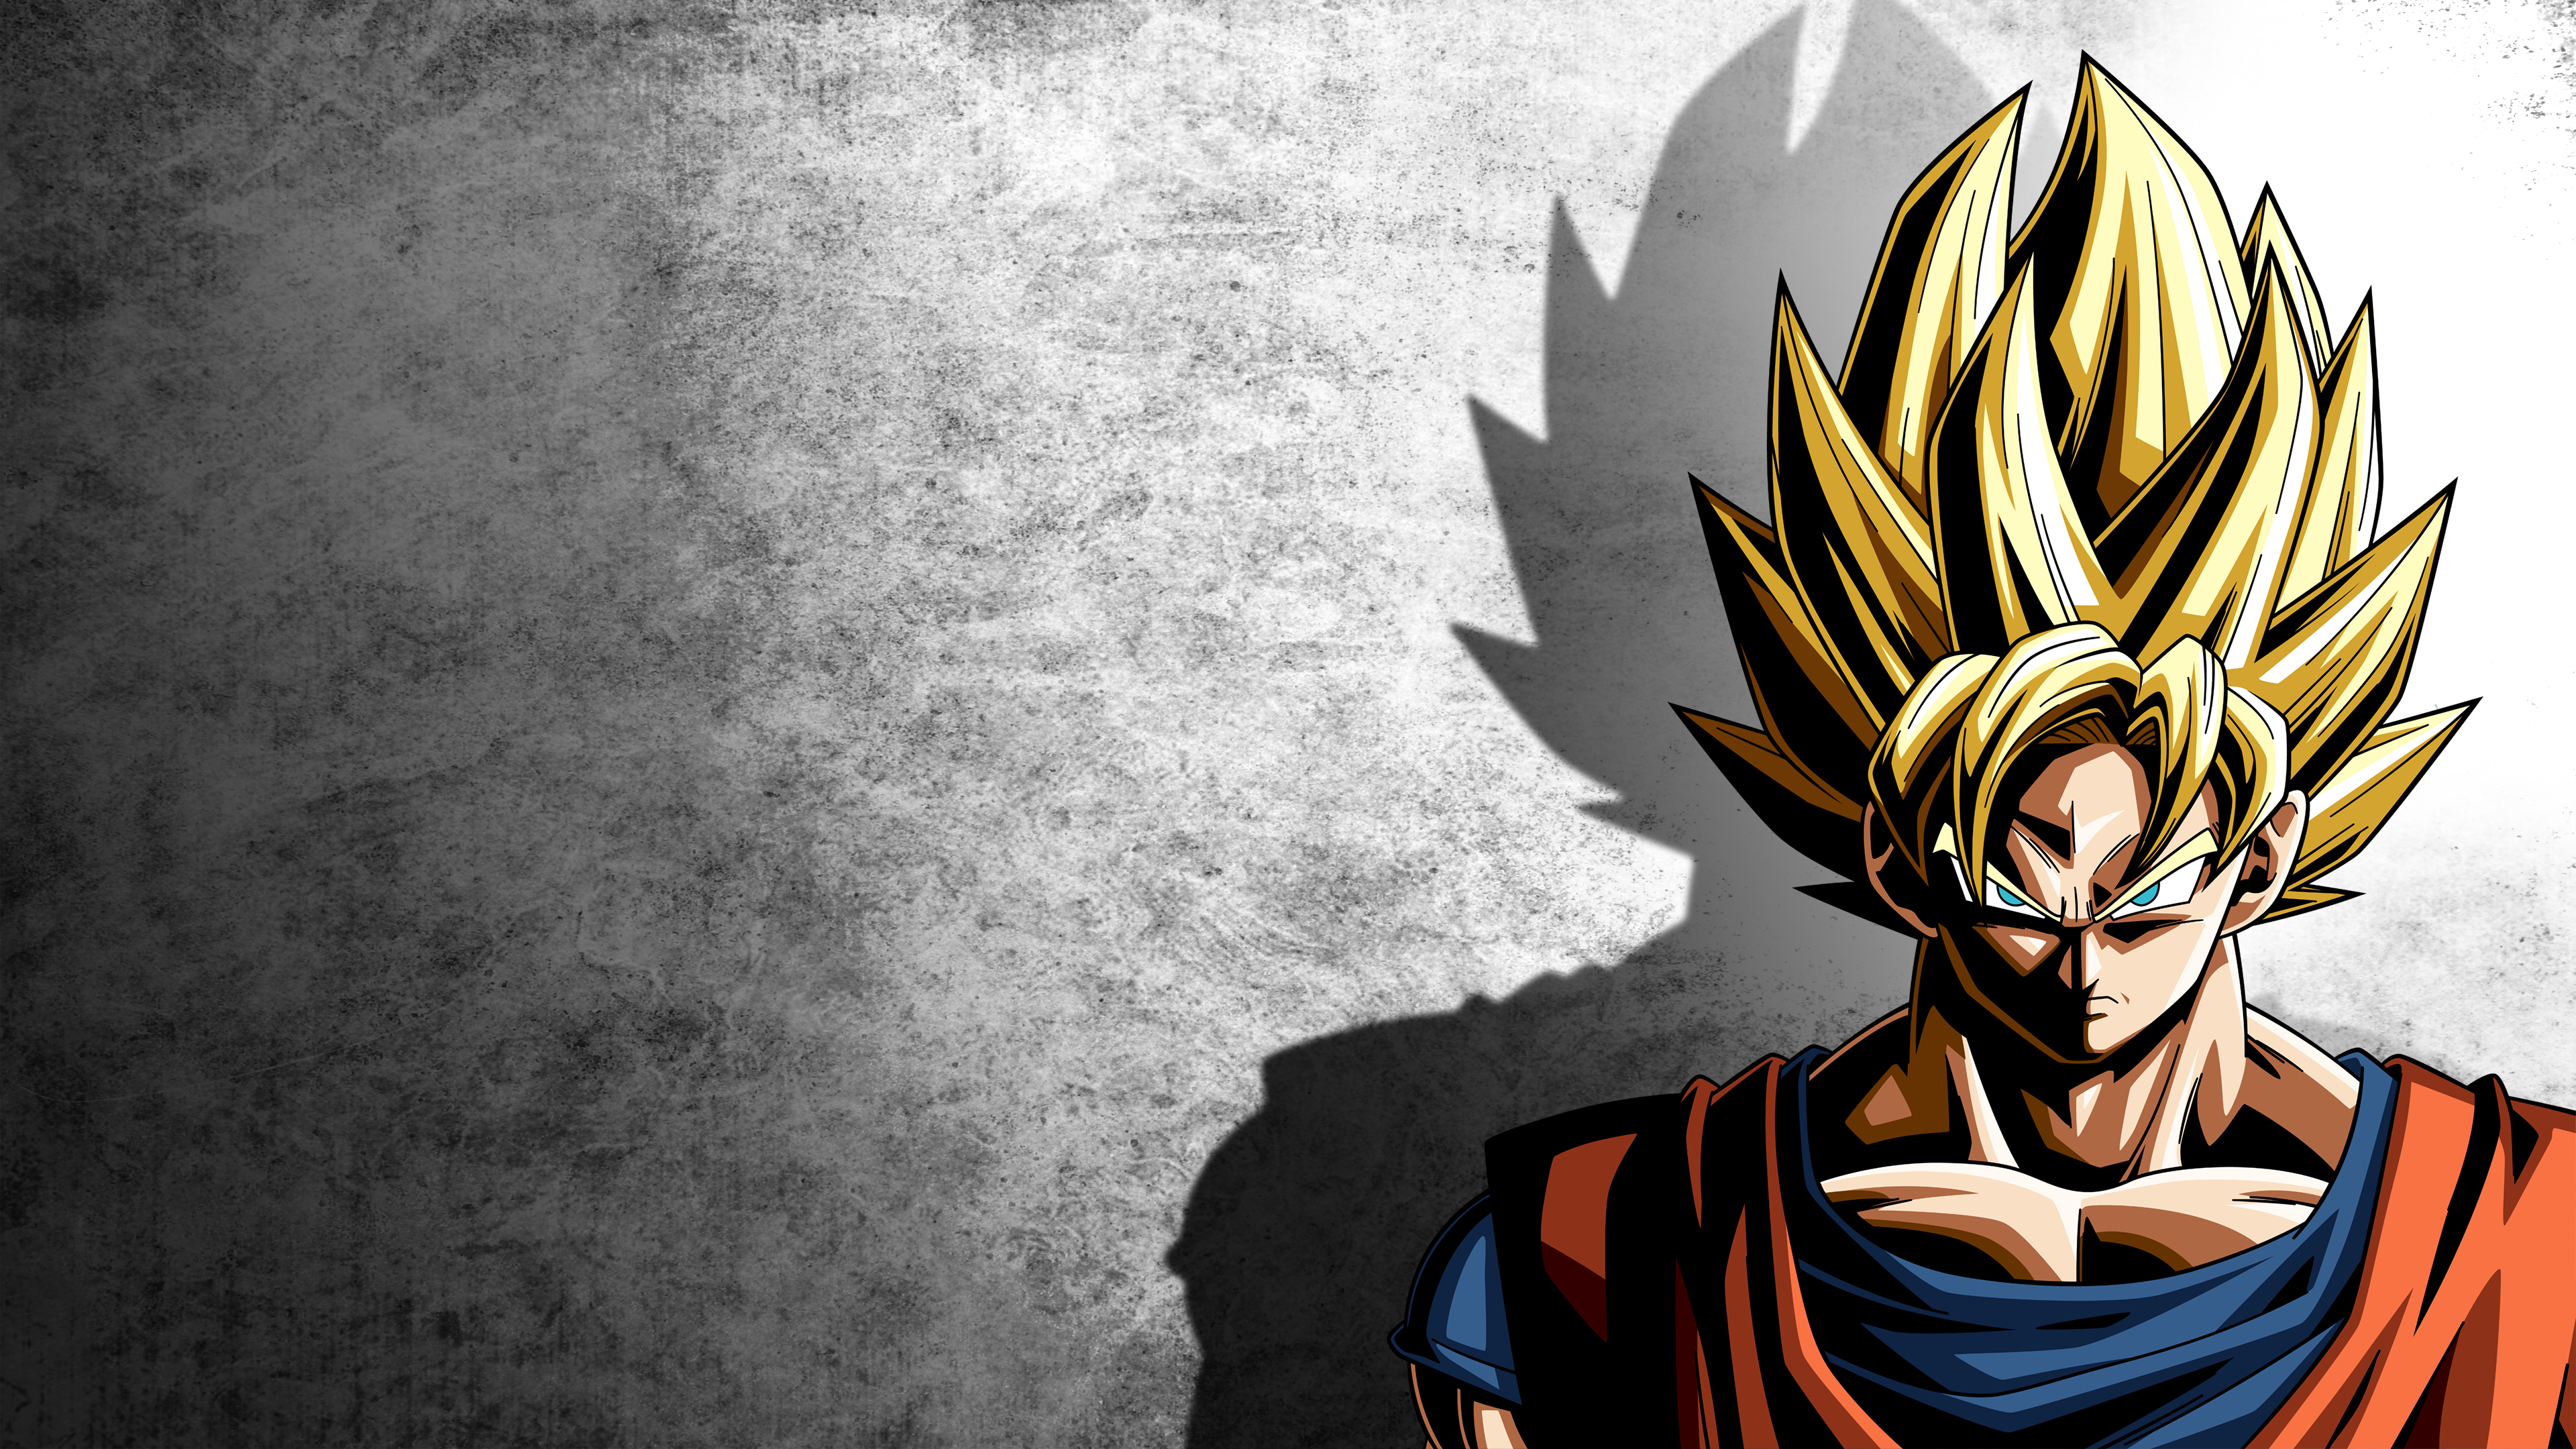 263 dragon ball hd wallpapers | background images - wallpaper abyss